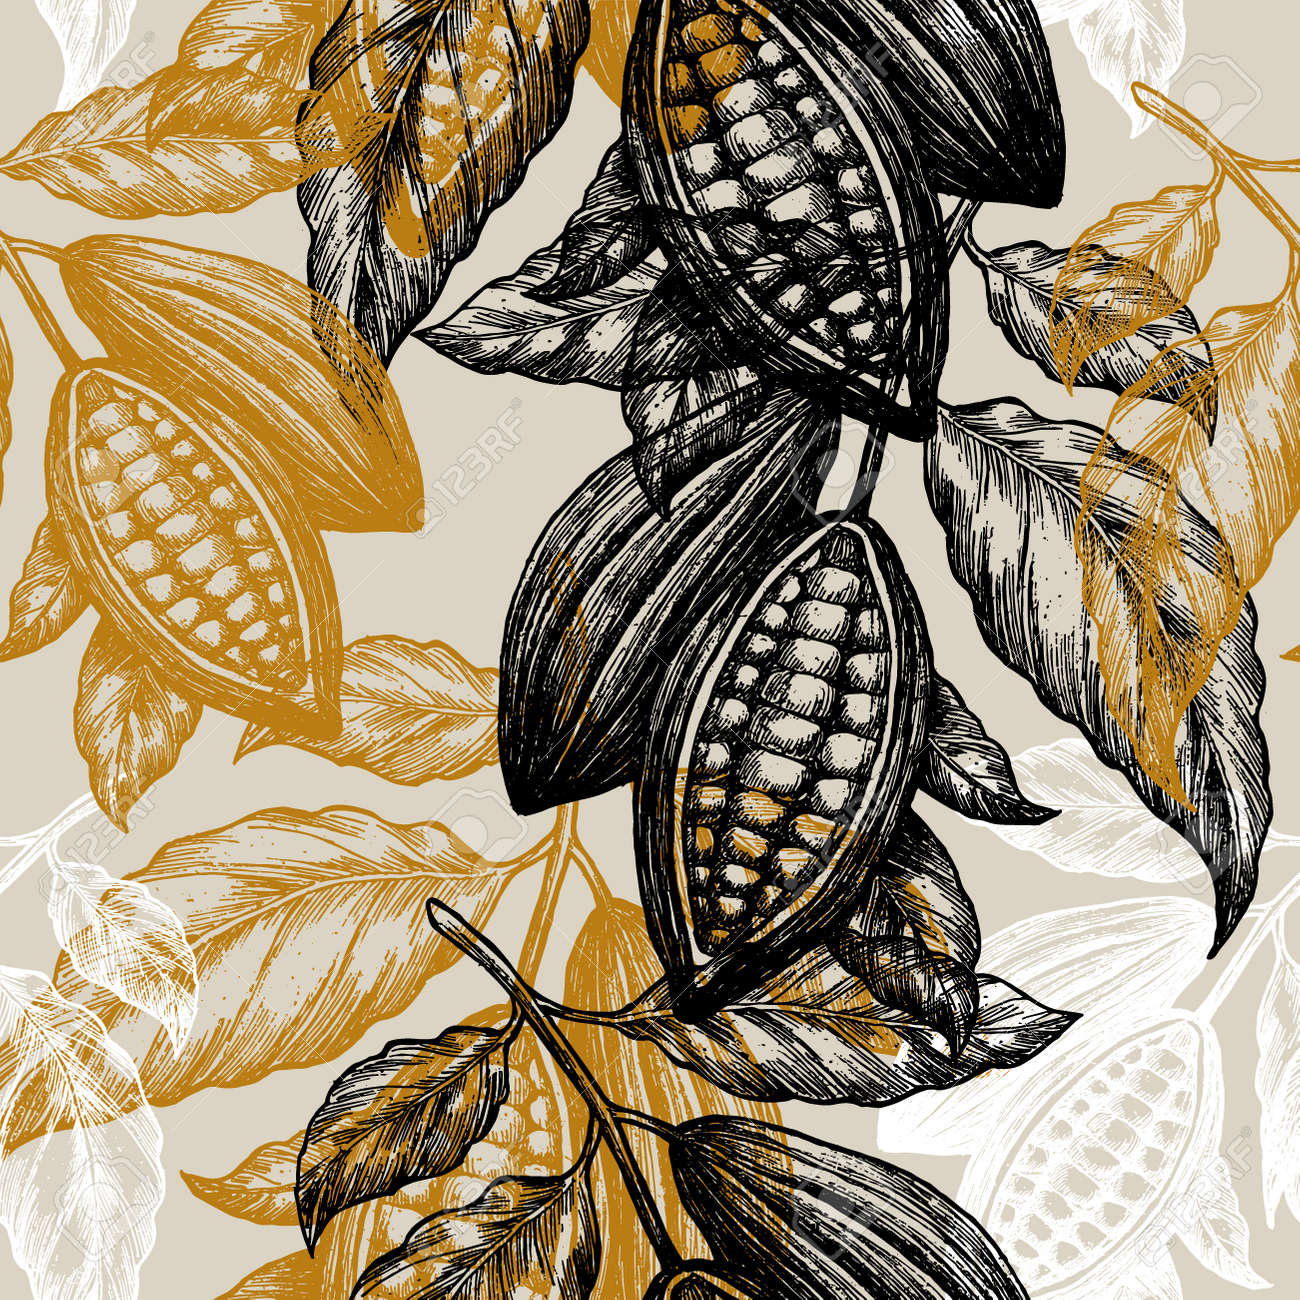 Cocoa Beans Seamless Pattern Cocoa Tree Illustration Engraved Royalty Free Cliparts Vectors And Stock Illustration Image 88551526